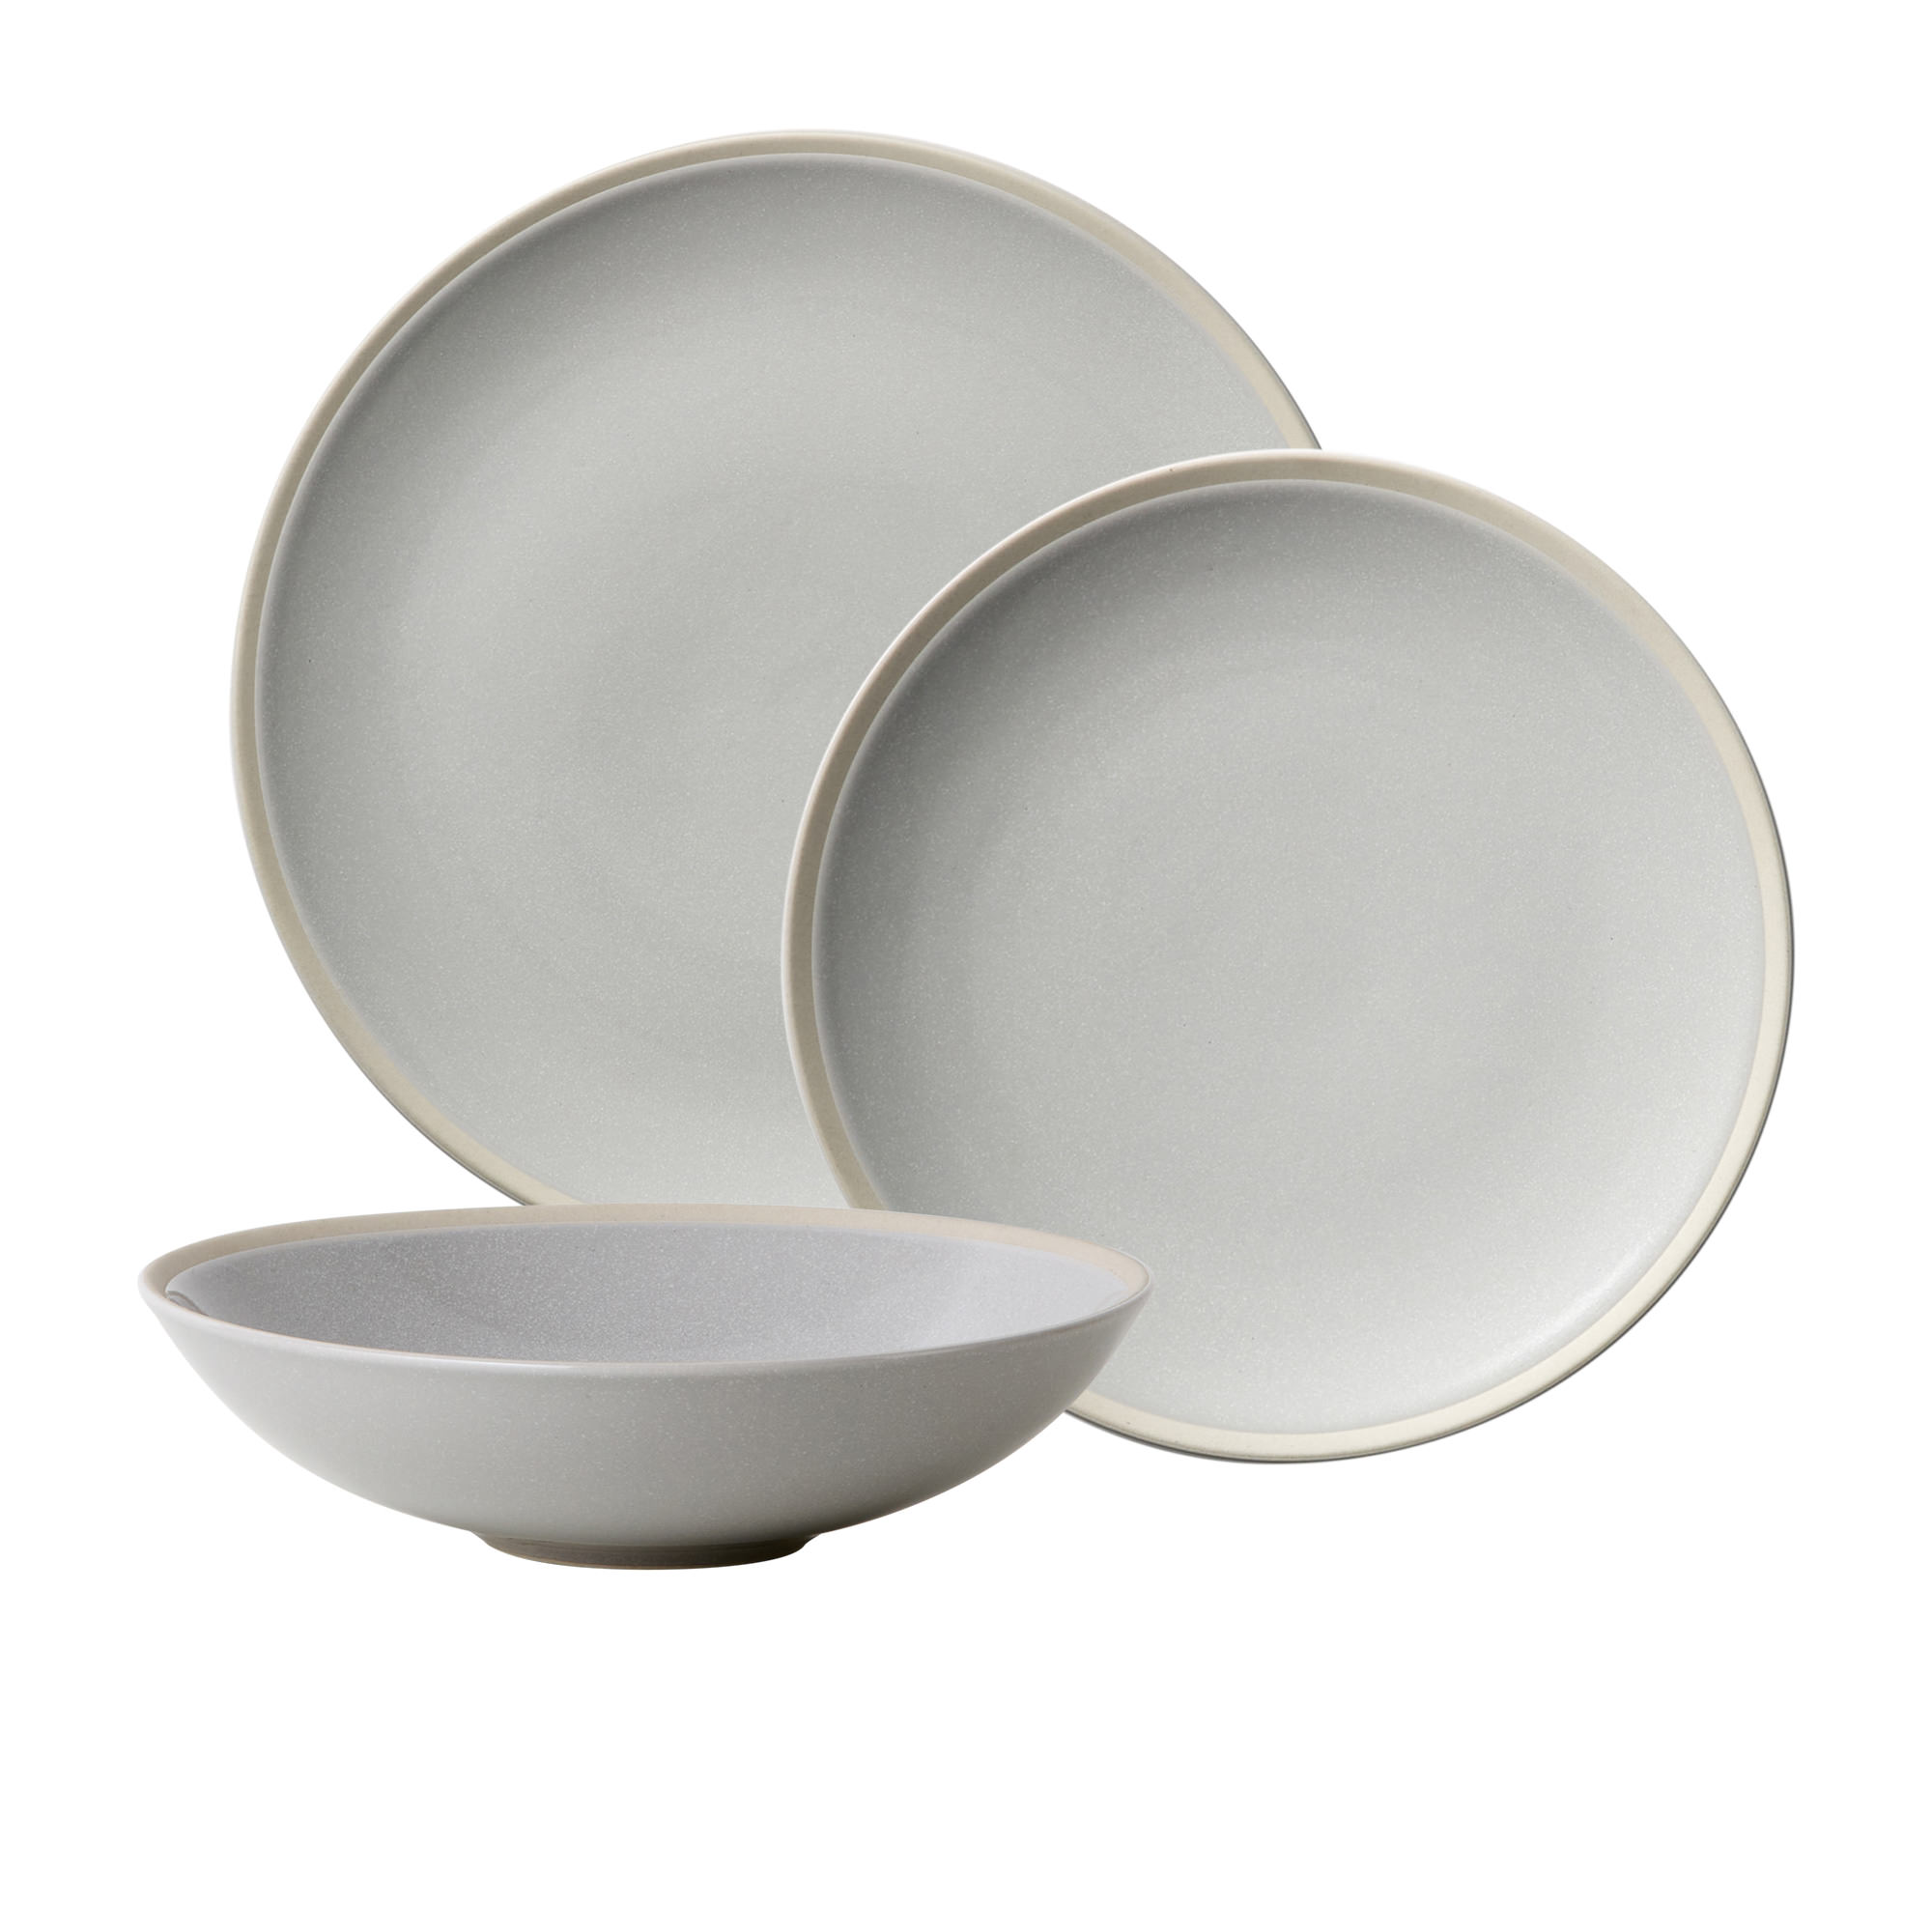 Salisbury & Co Malta 12pc Dinner Set Grey